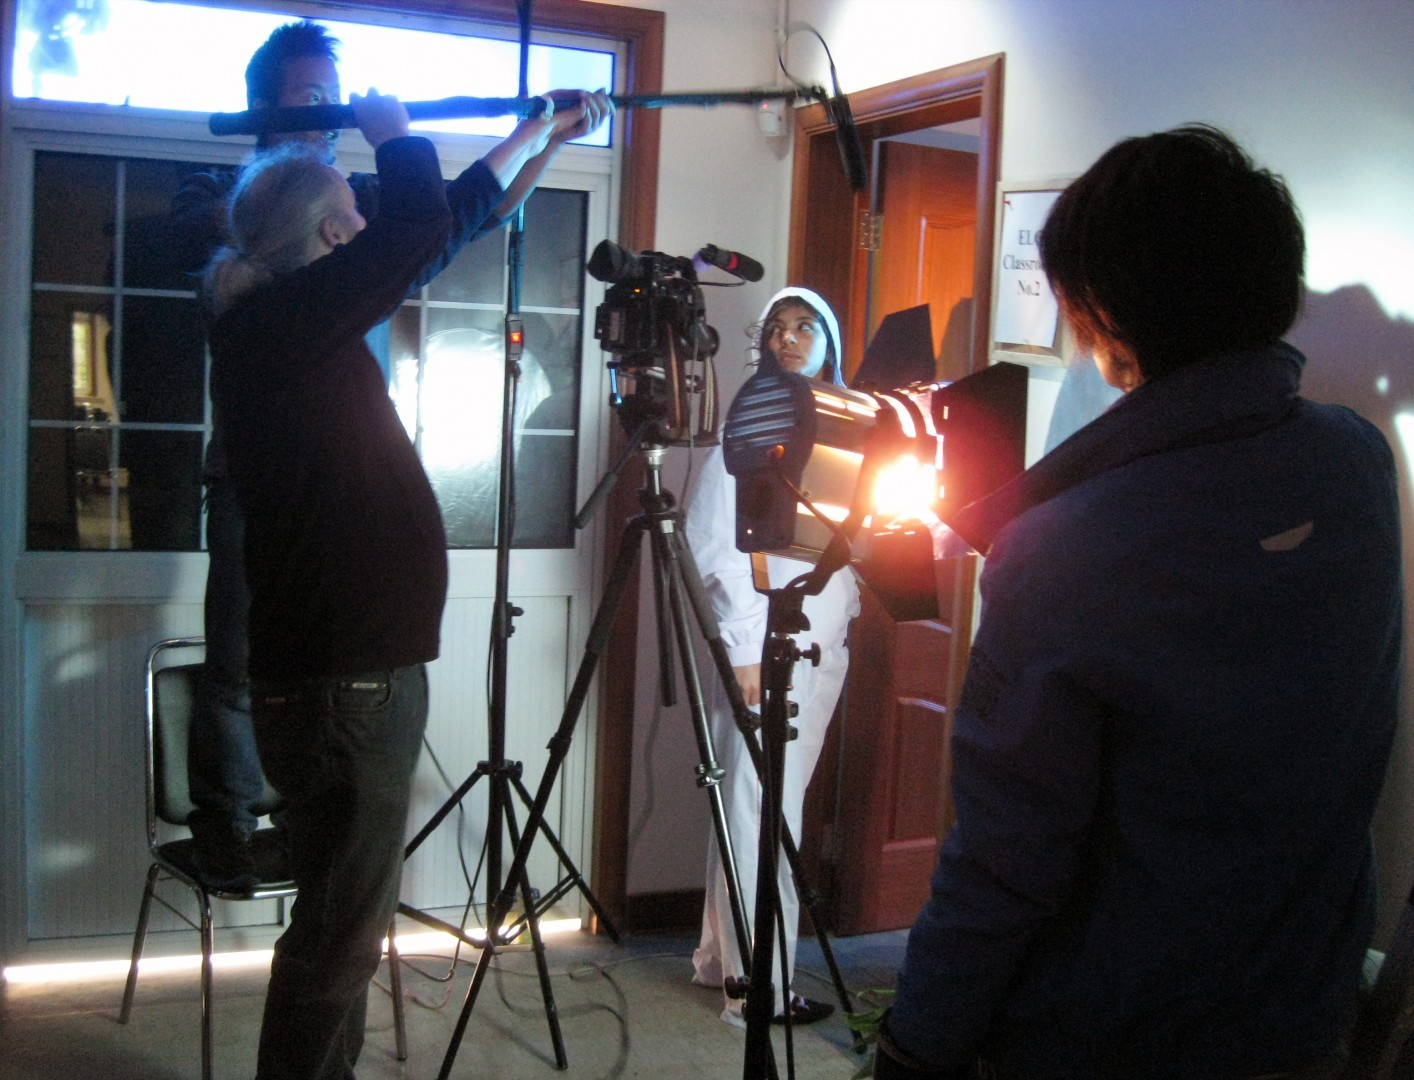 Each class will produce a short film according the number of students and the different locations available.